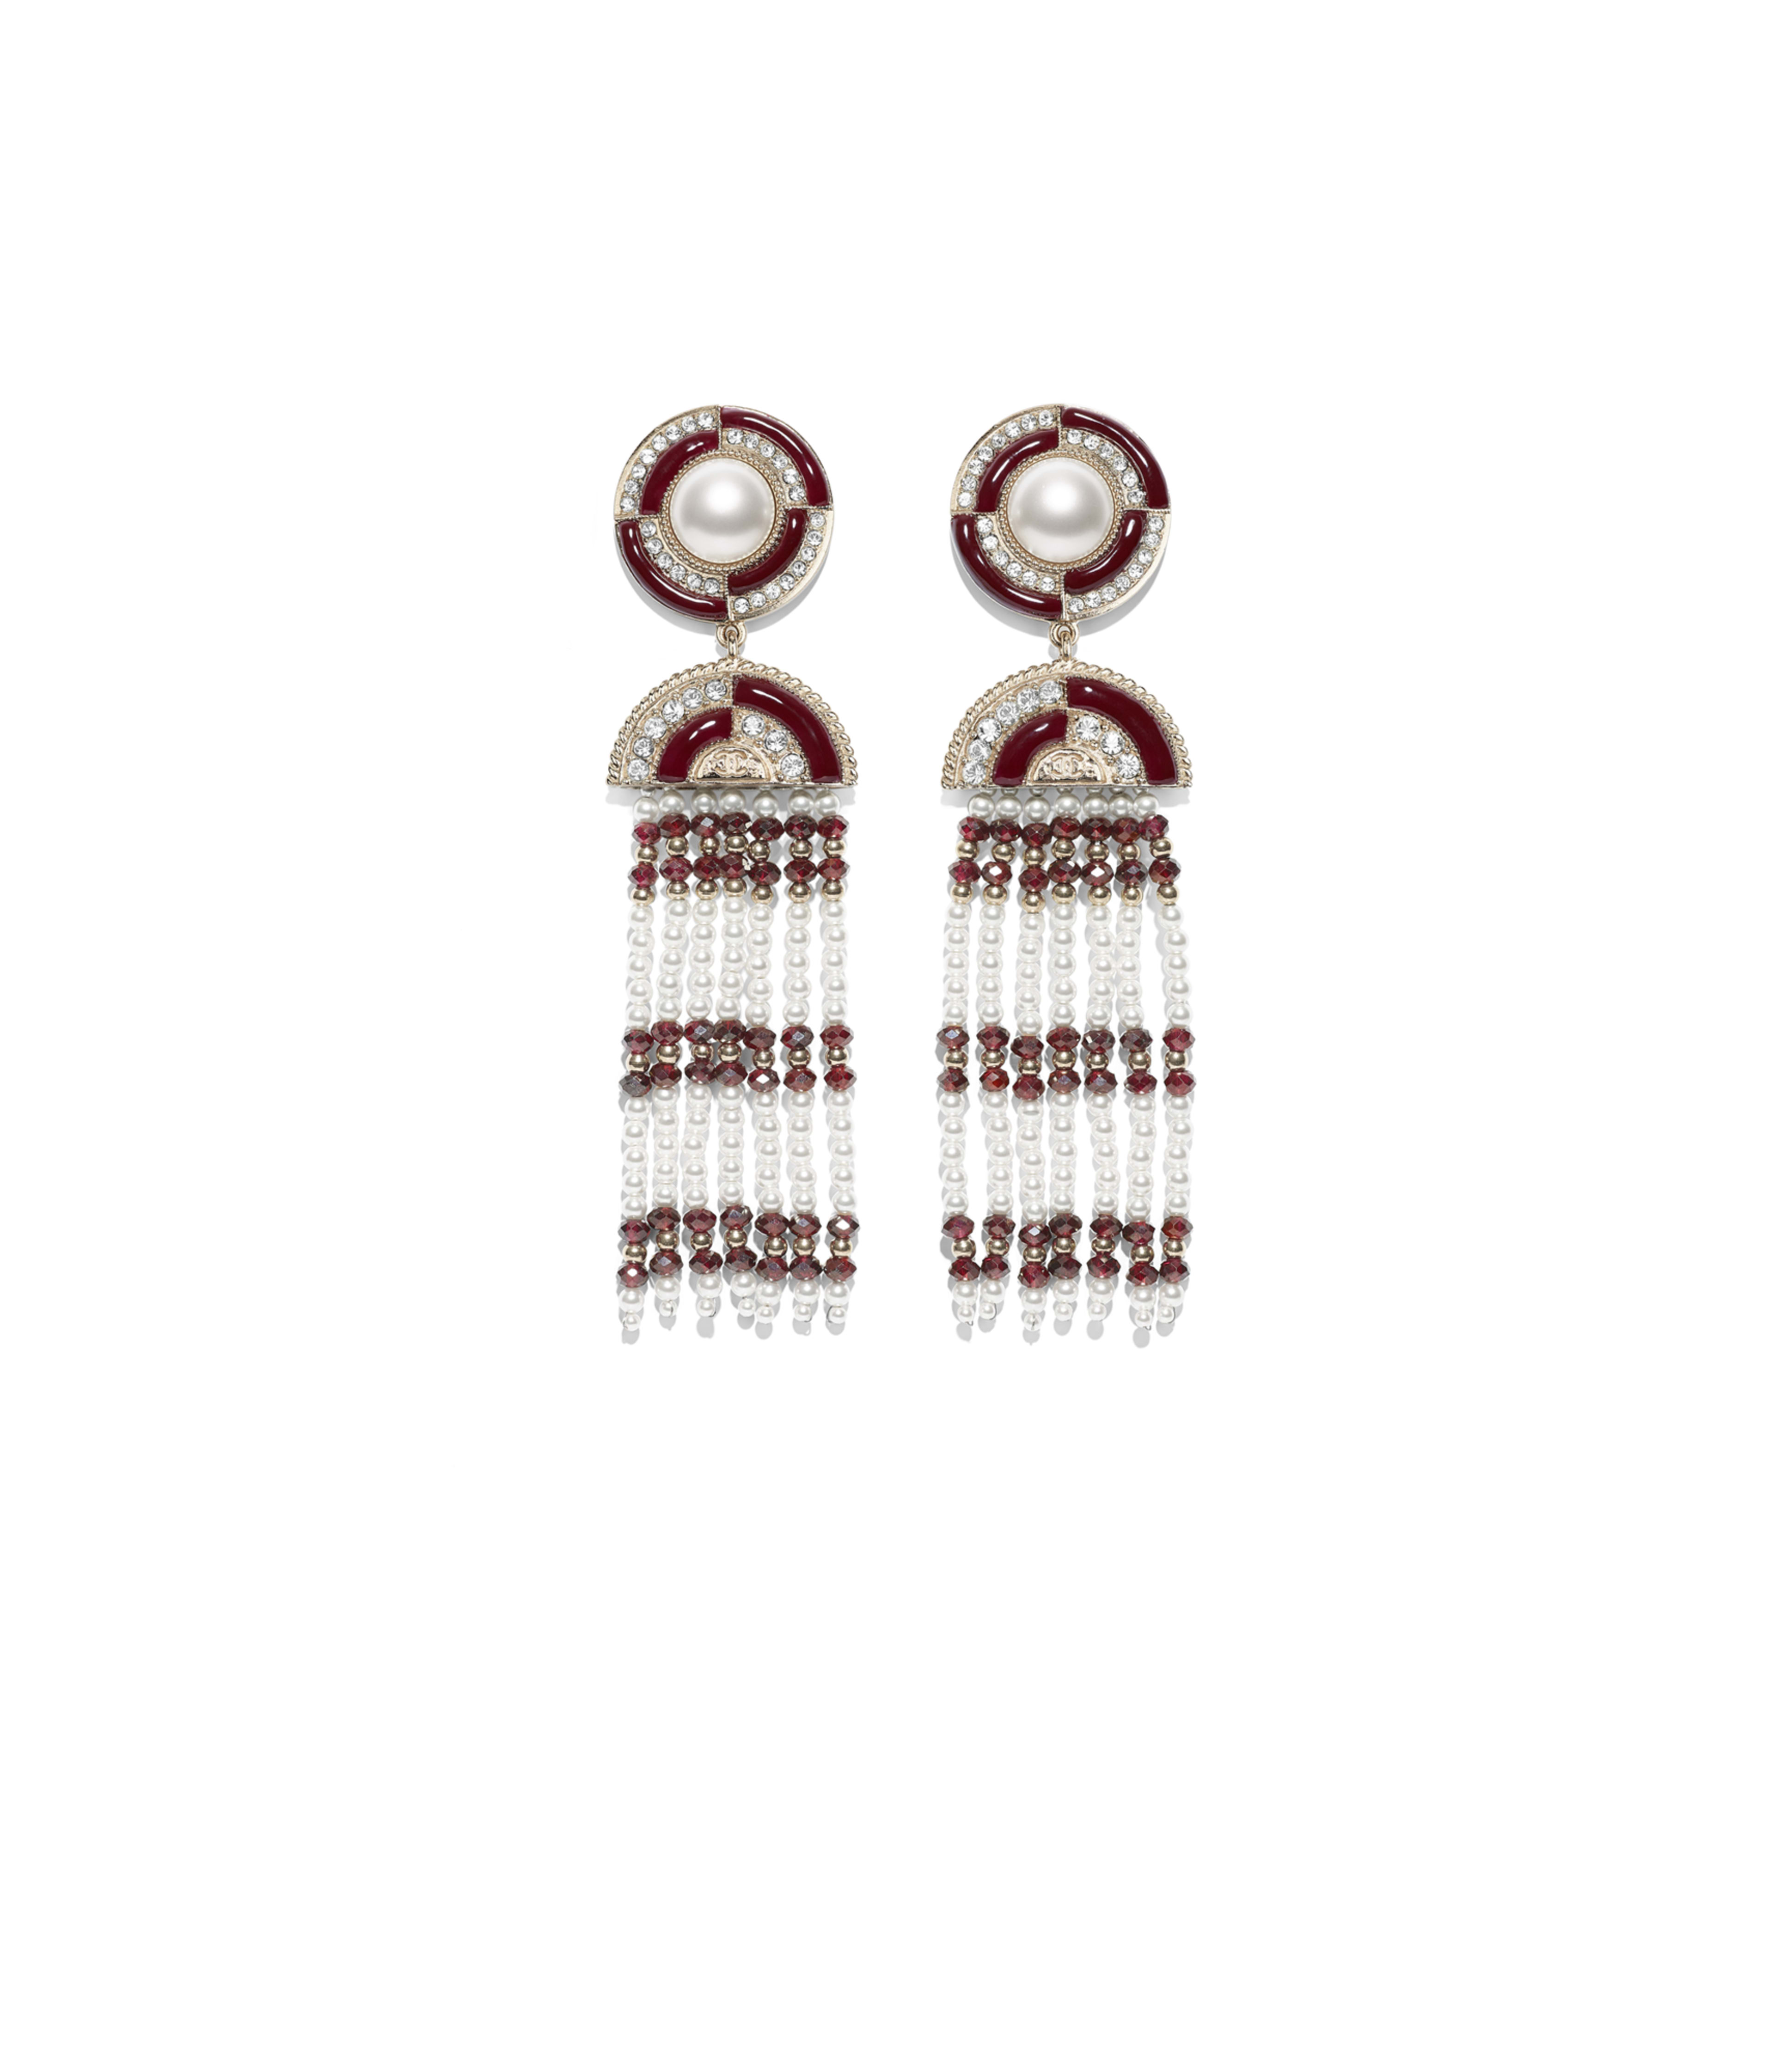 bcfee187a Earrings Metal, Natural Stones, Glass Pearls, Strass & Resin, Gold, Red,  Pearly White & Crystal Ref. AB1975Y47786Z9214